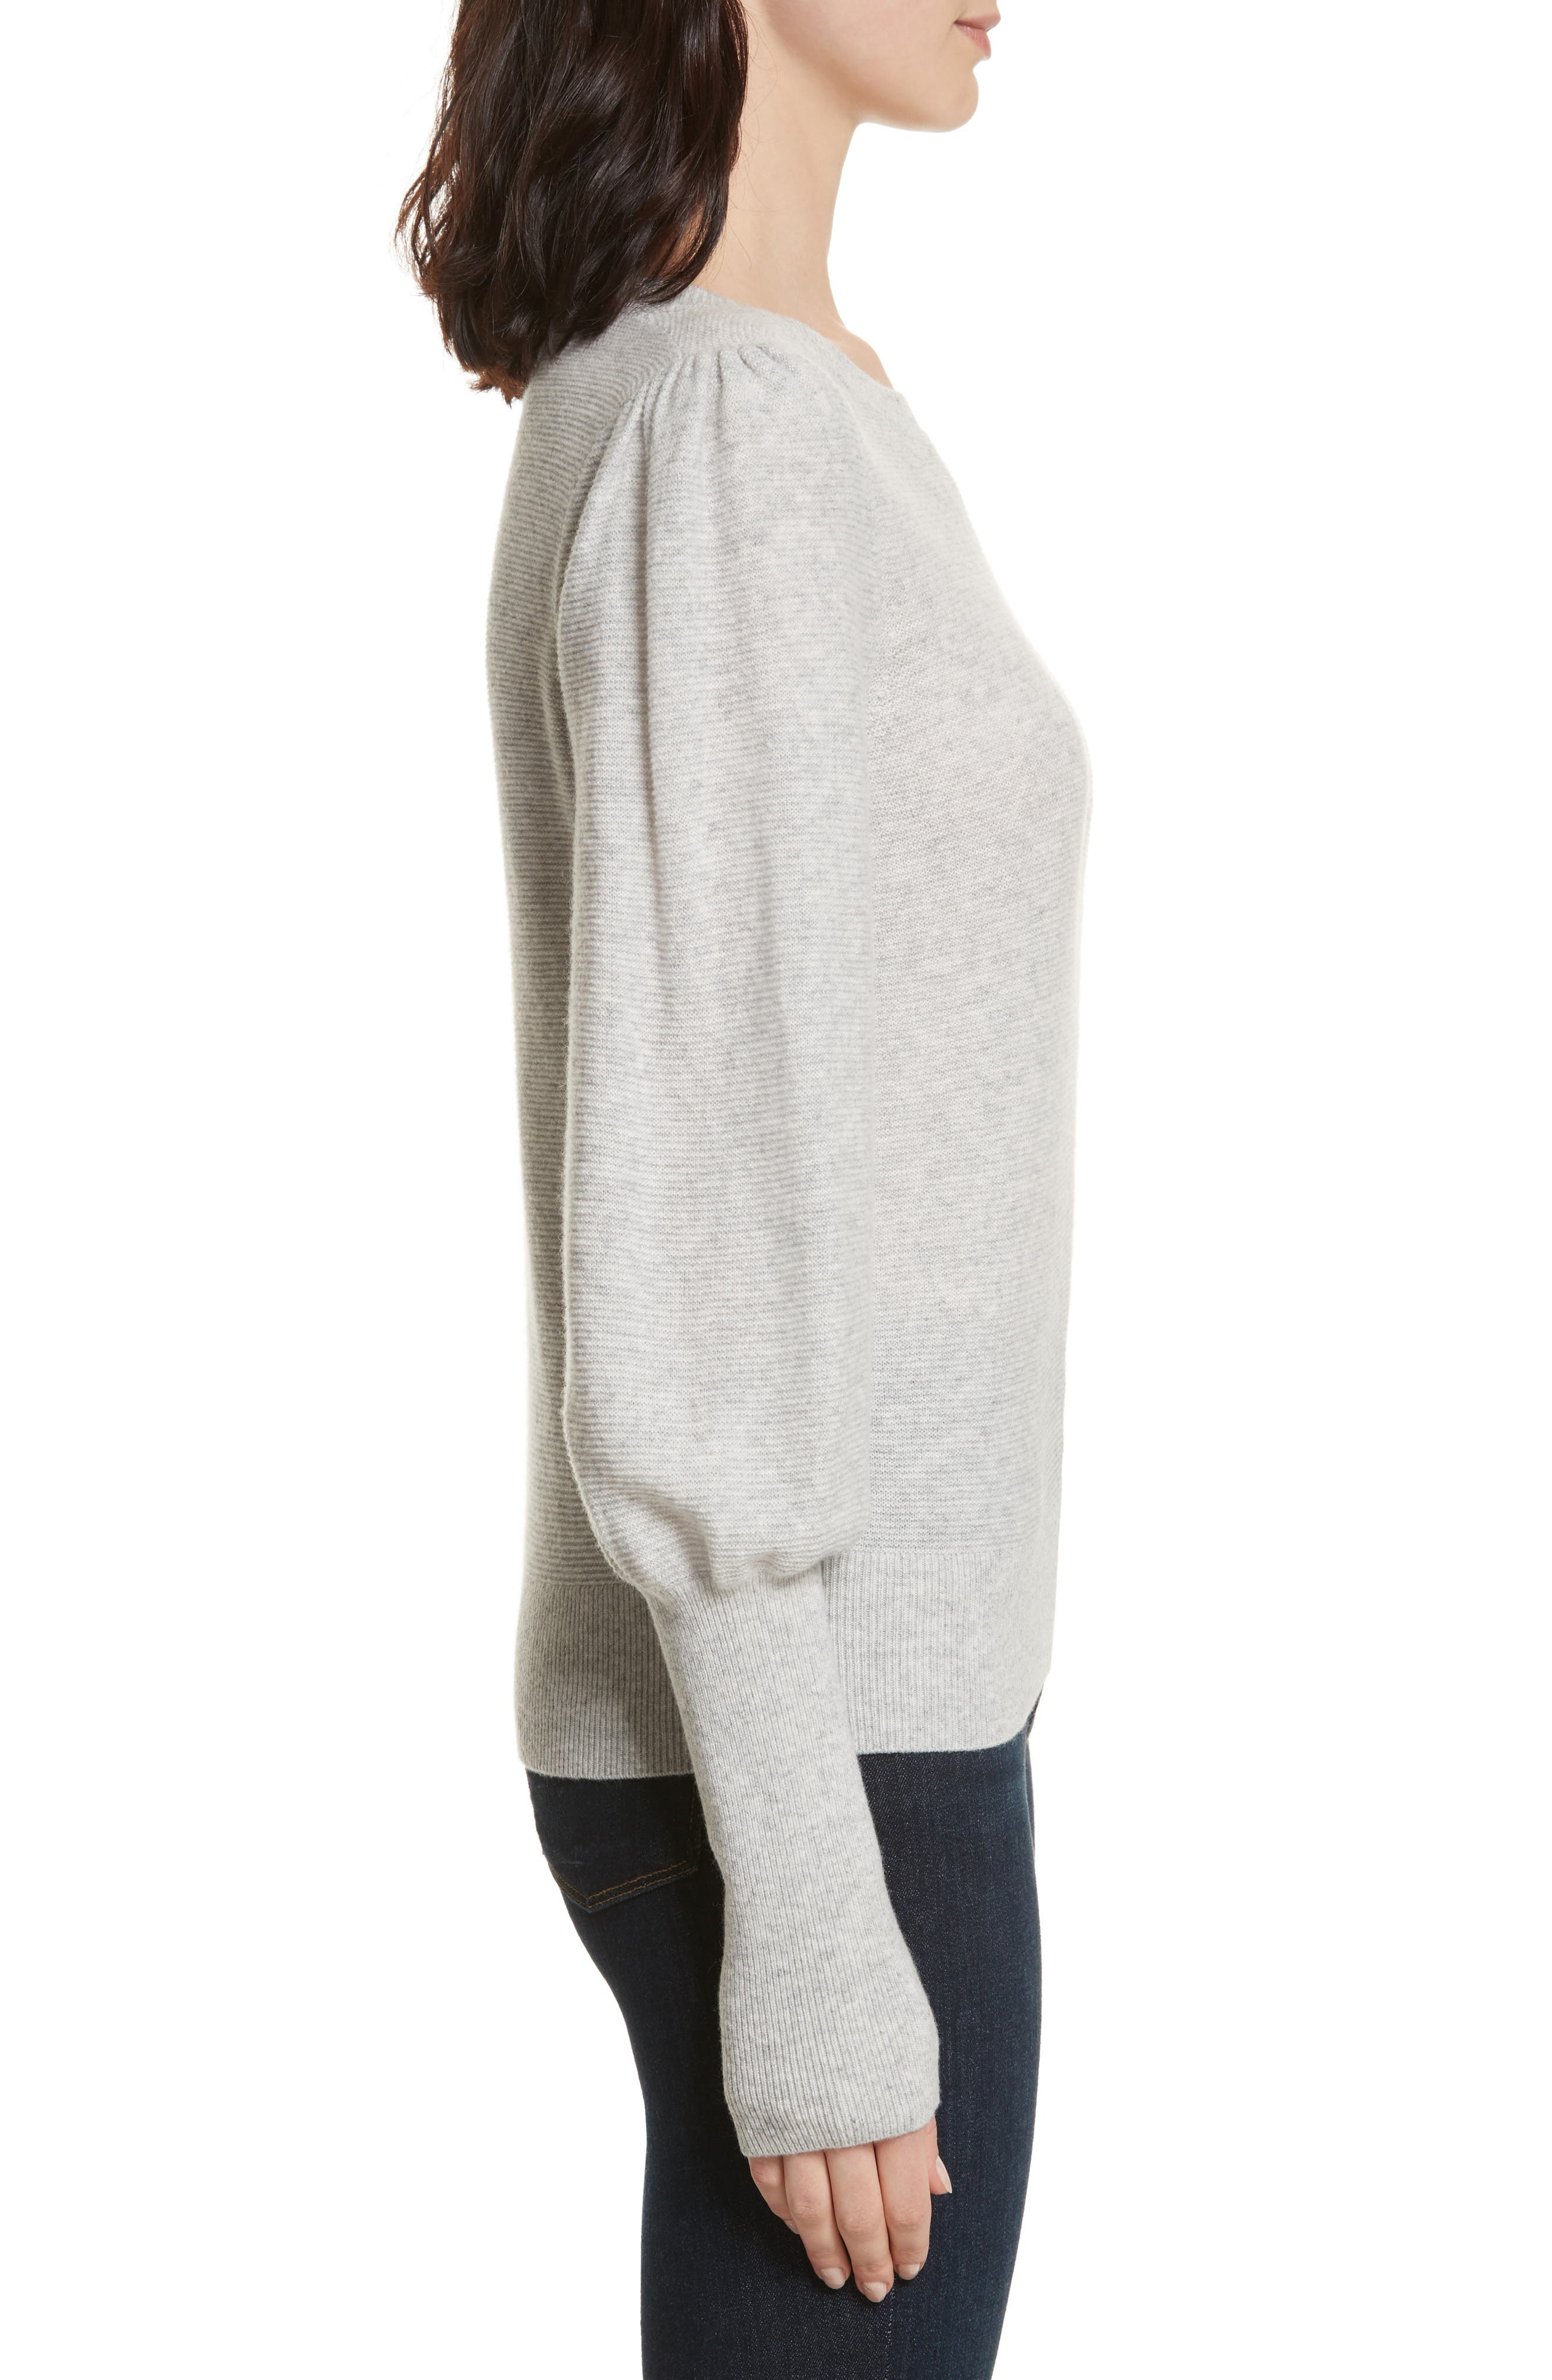 Noely Wool and Cashmere Sweater,                             Alternate thumbnail 3, color,                             Light Heather Grey